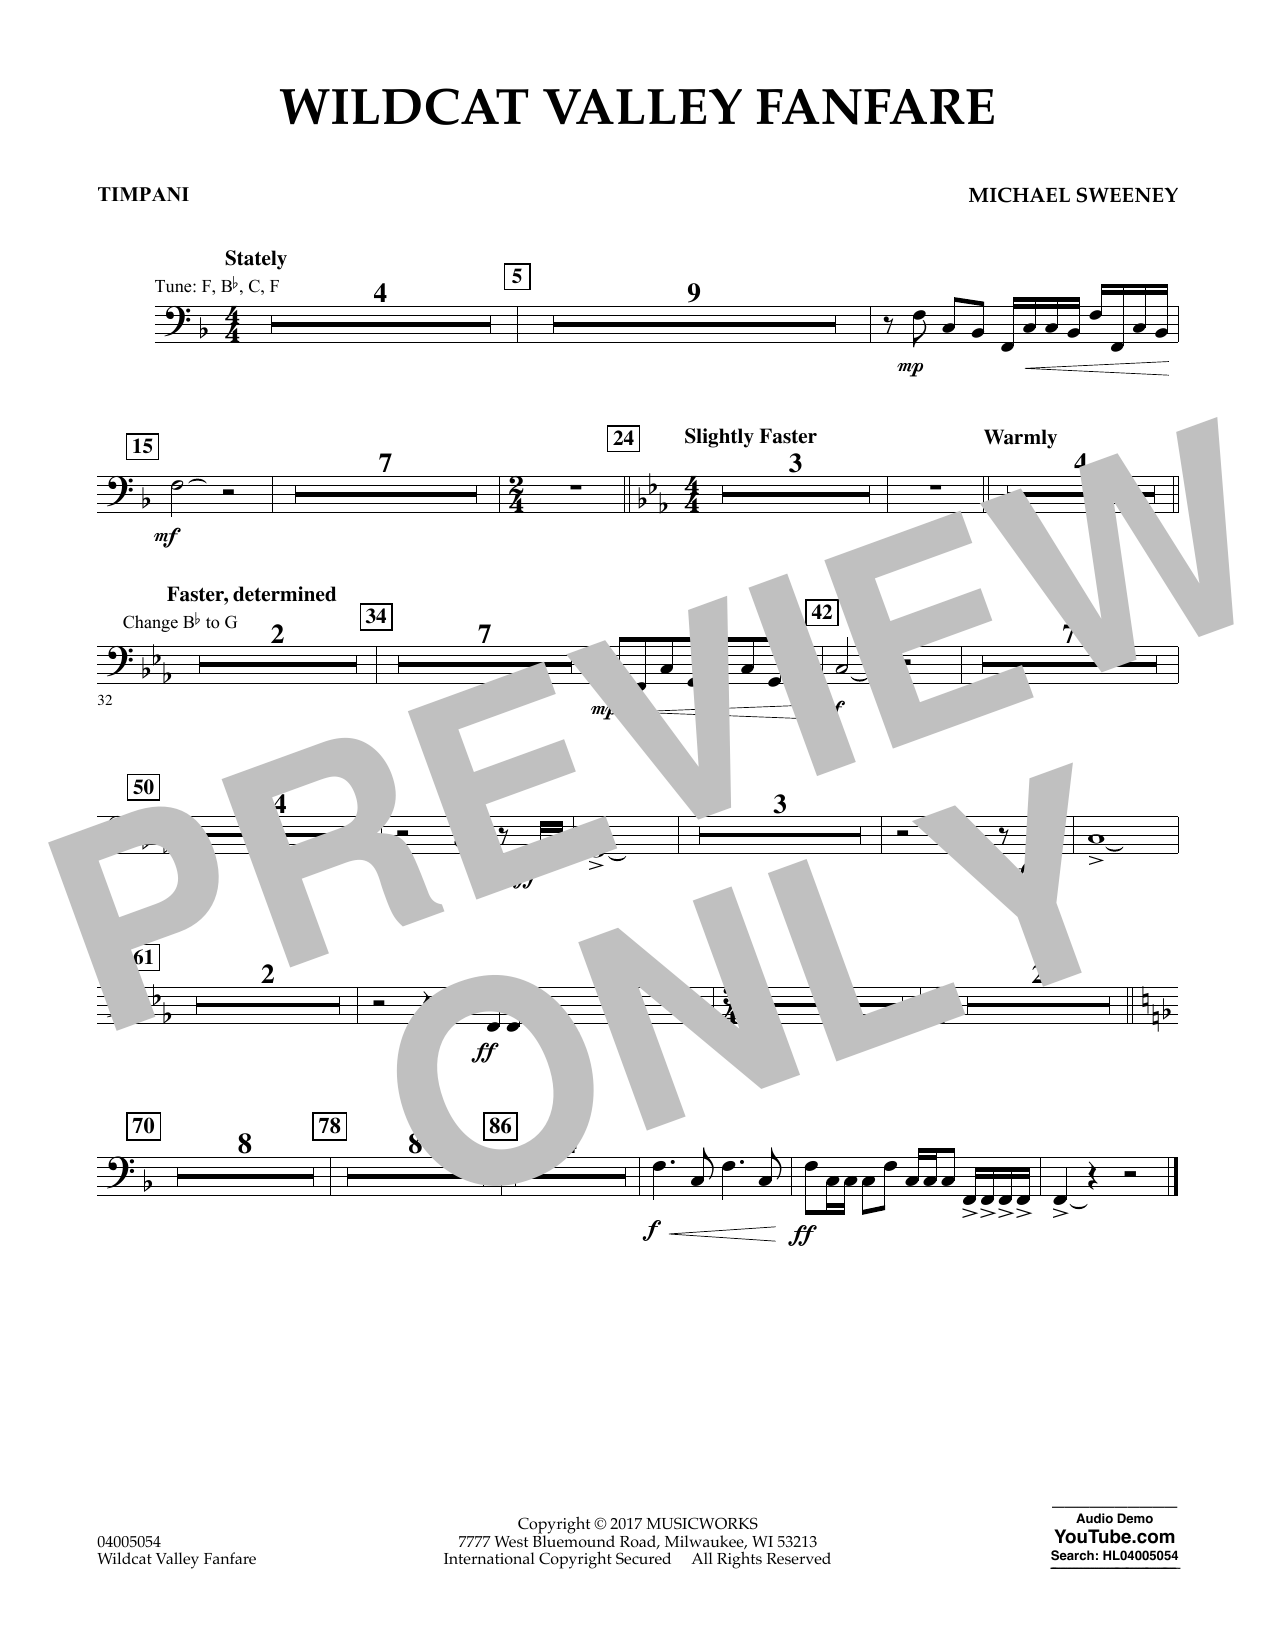 Wildcat Valley Fanfare - Timpani Sheet Music